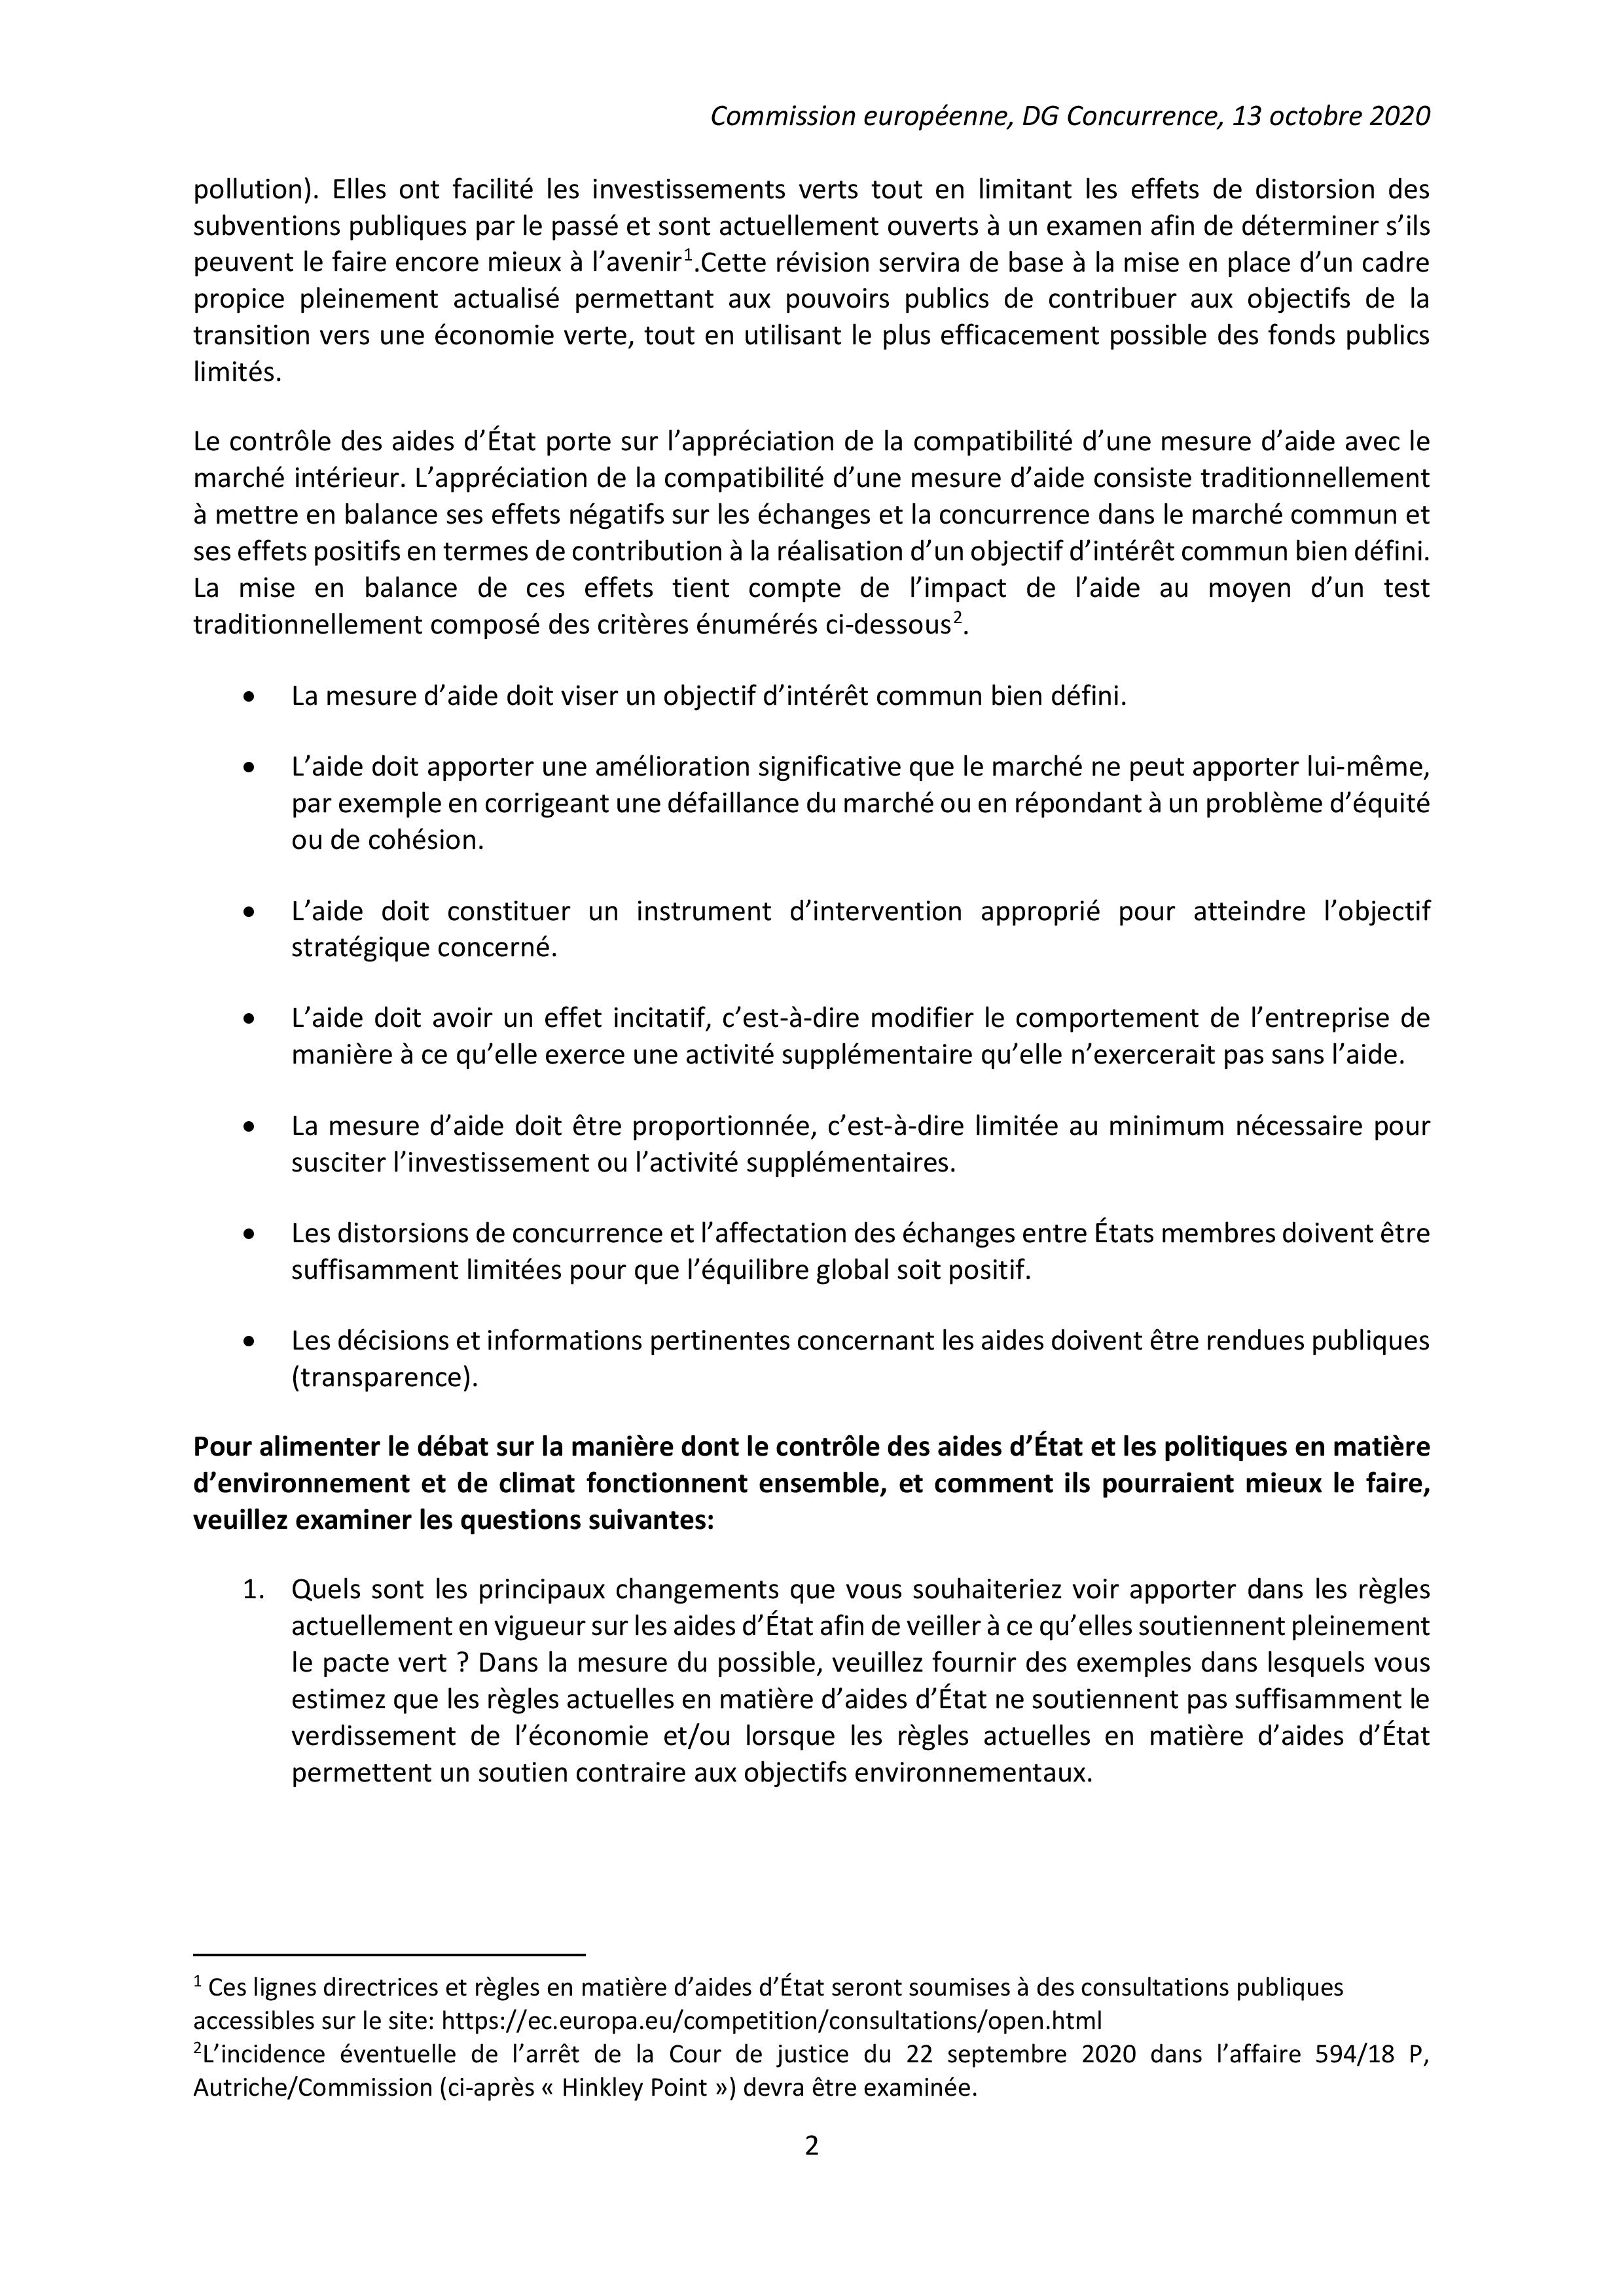 call_for_contributions_fr-page-002